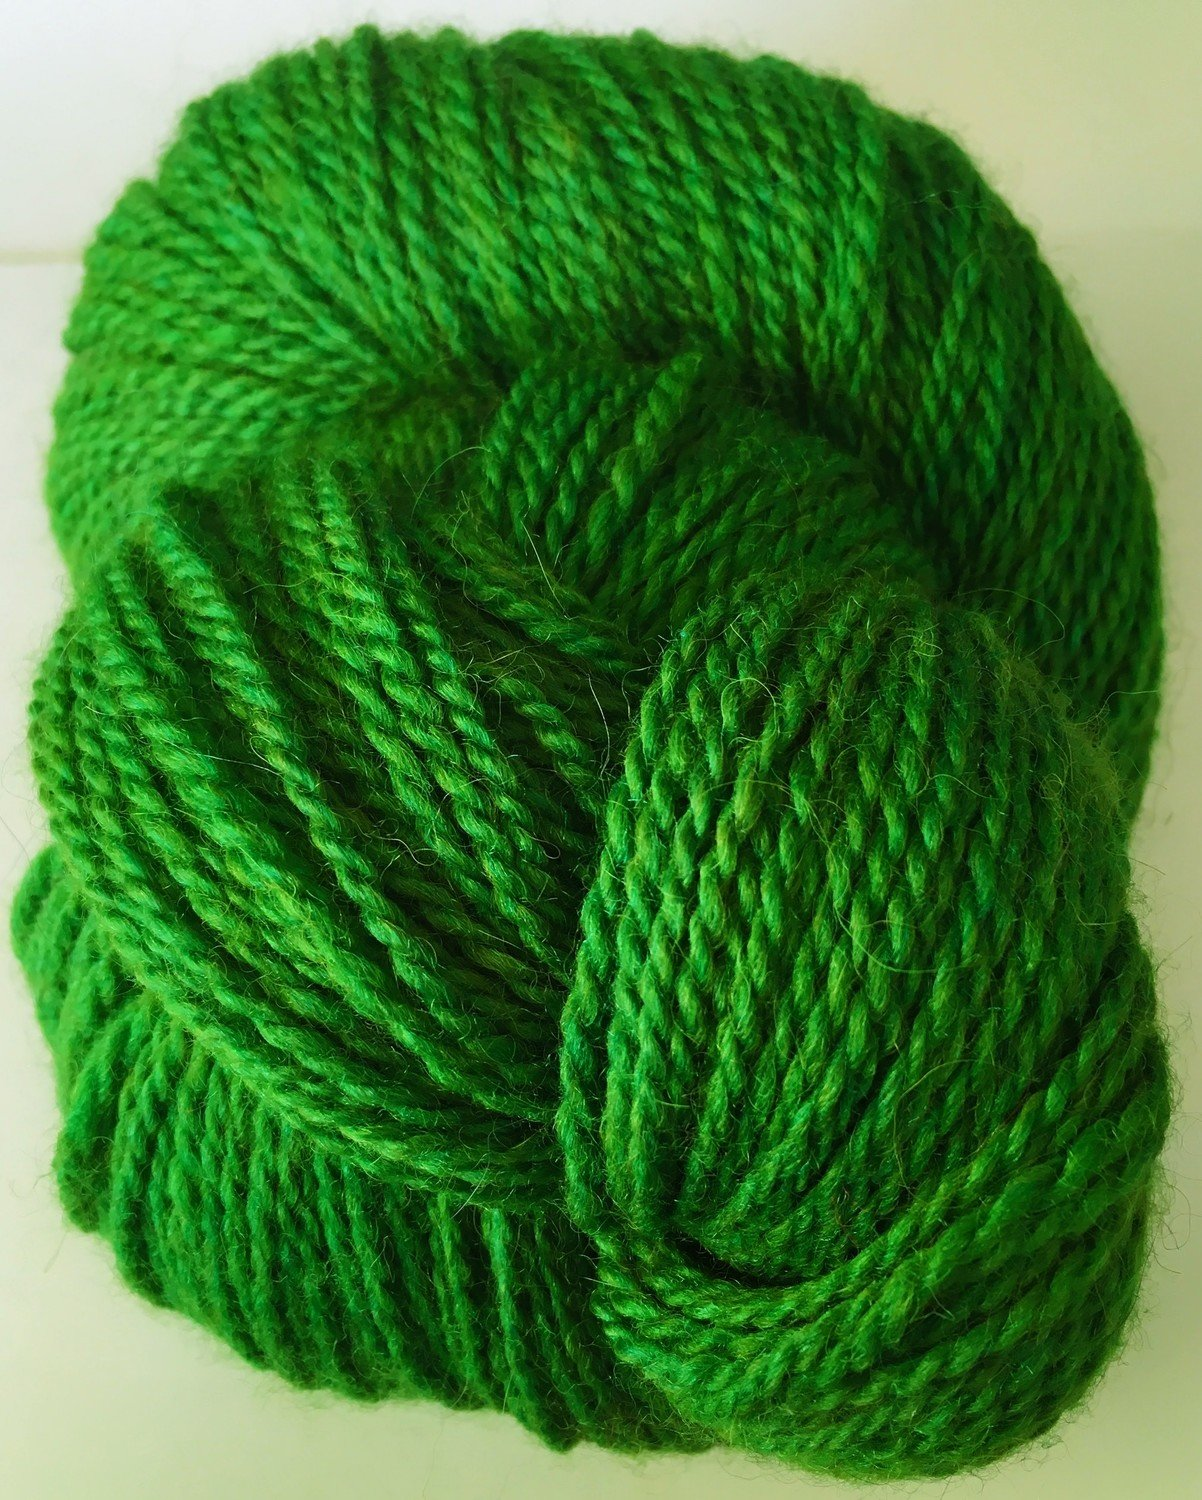 Breezy Hill Cottage-Milled, Hand-Dyed Yarn - Green